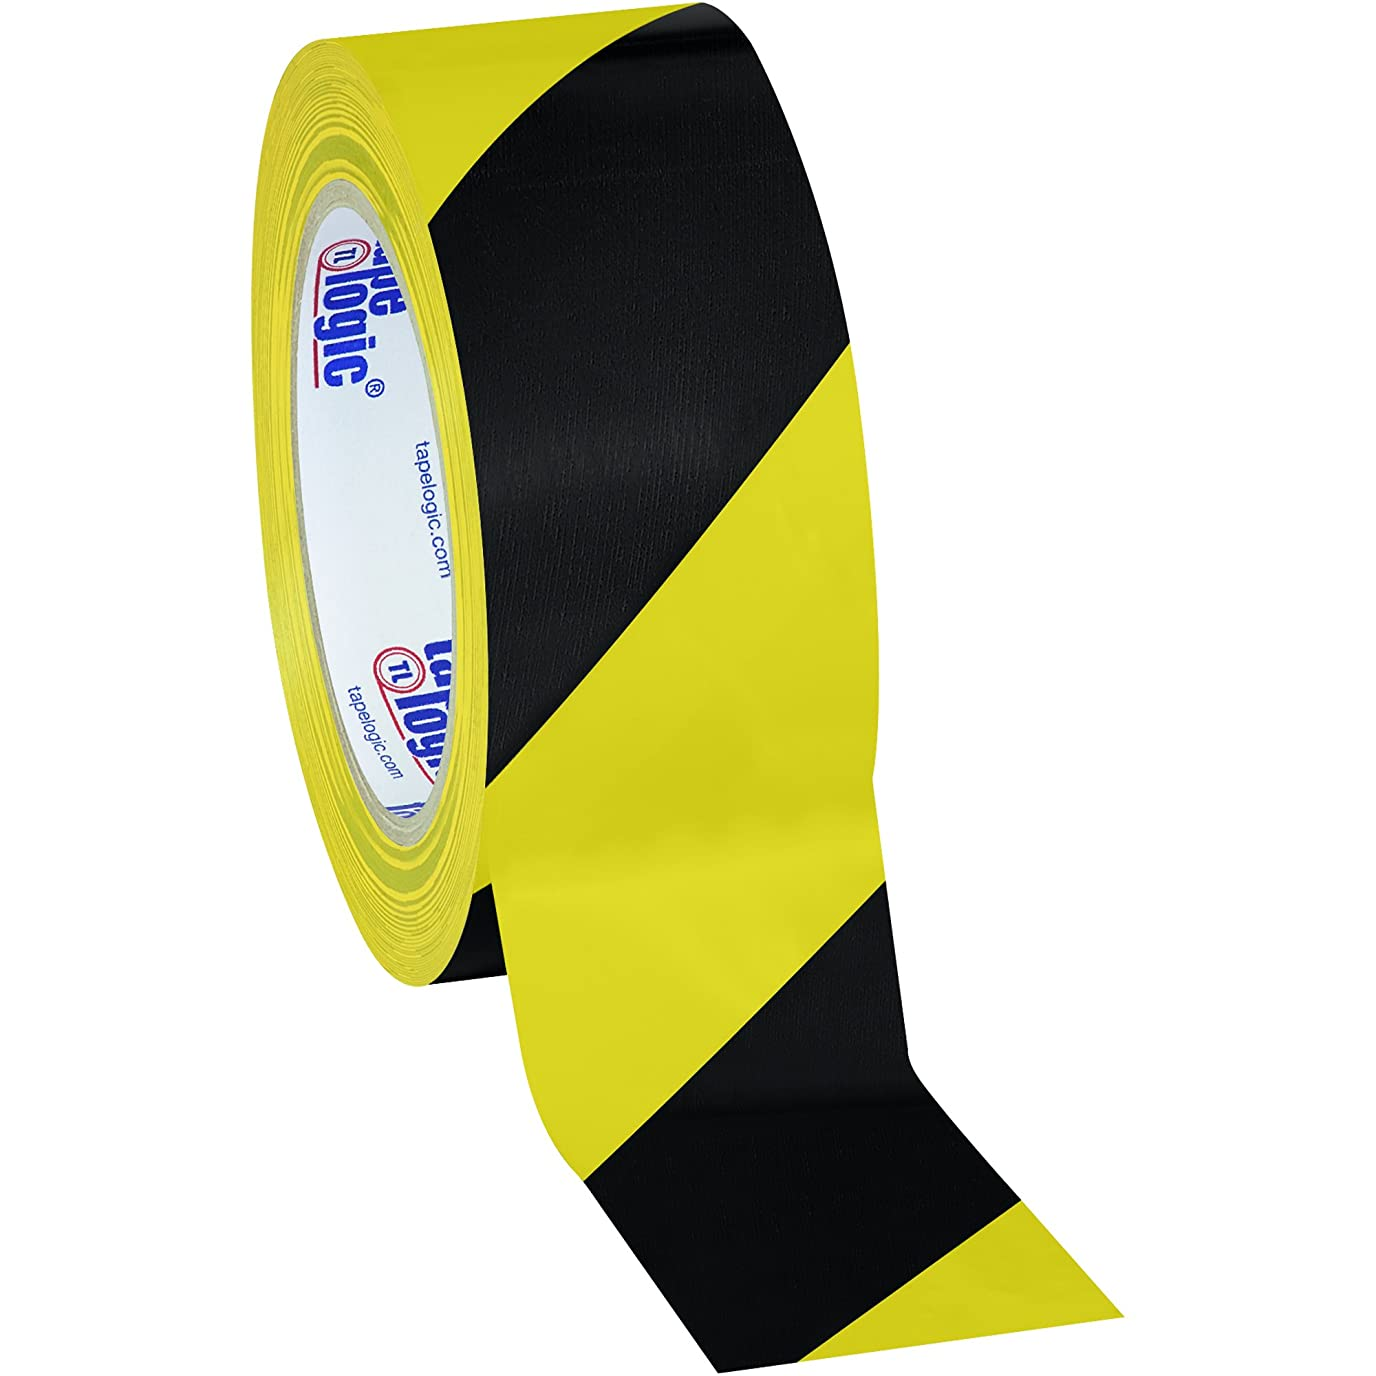 許容奪う正規化Aviditi T9236BY Heavy Duty Striped Vinyl Safety Tape, 36 yds Length x 2 Width, 7 mil Thick, Black/Yellow (Case of 24) by Aviditi